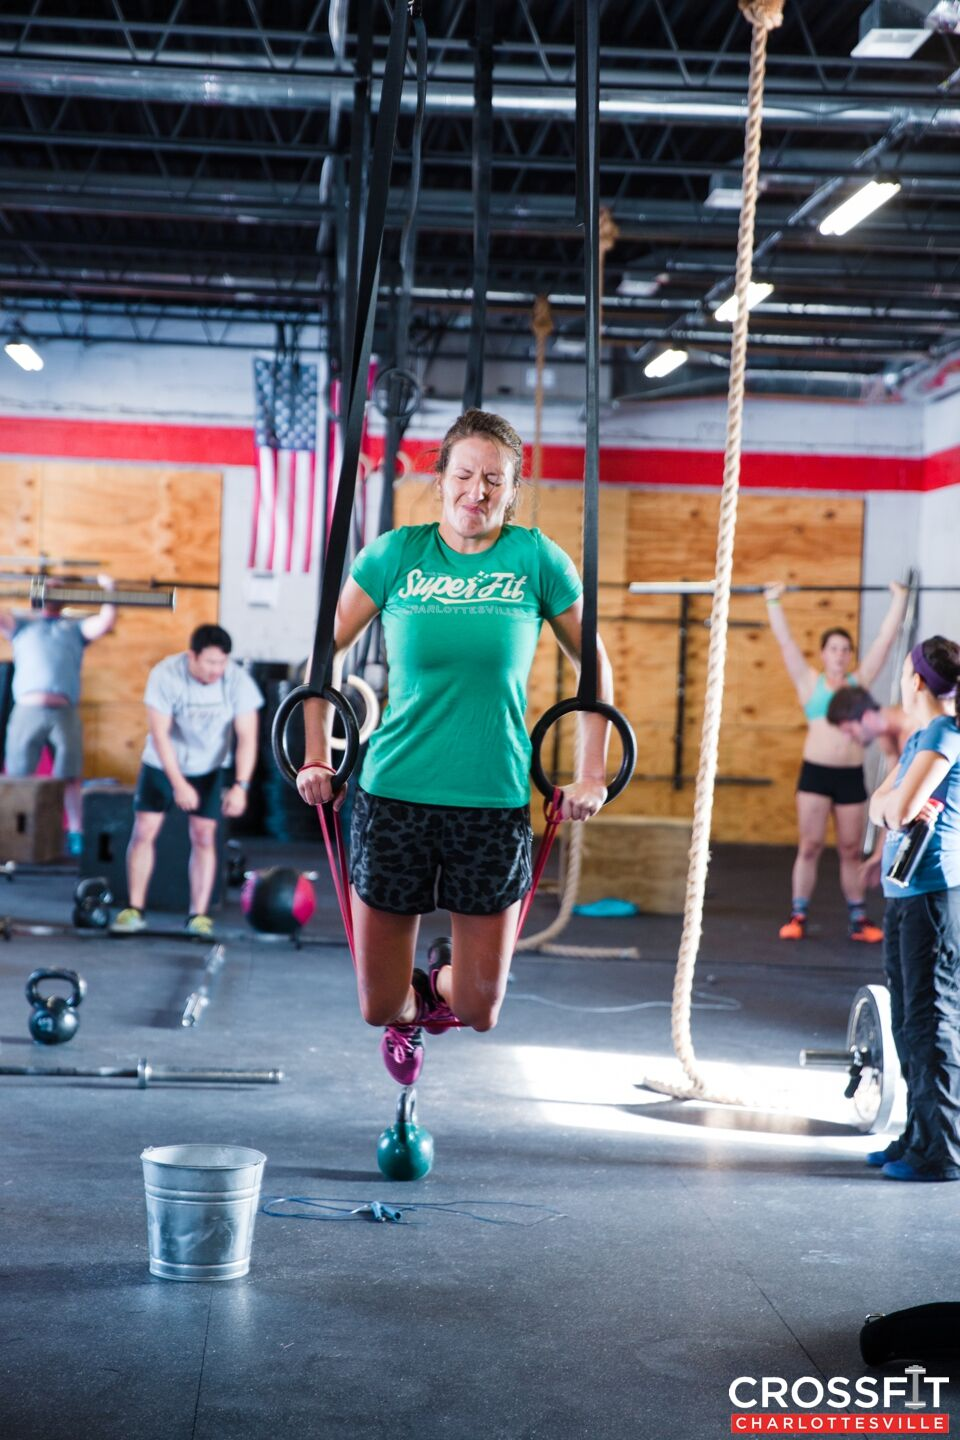 crossfit-charlottesville_0035_preview.jpeg